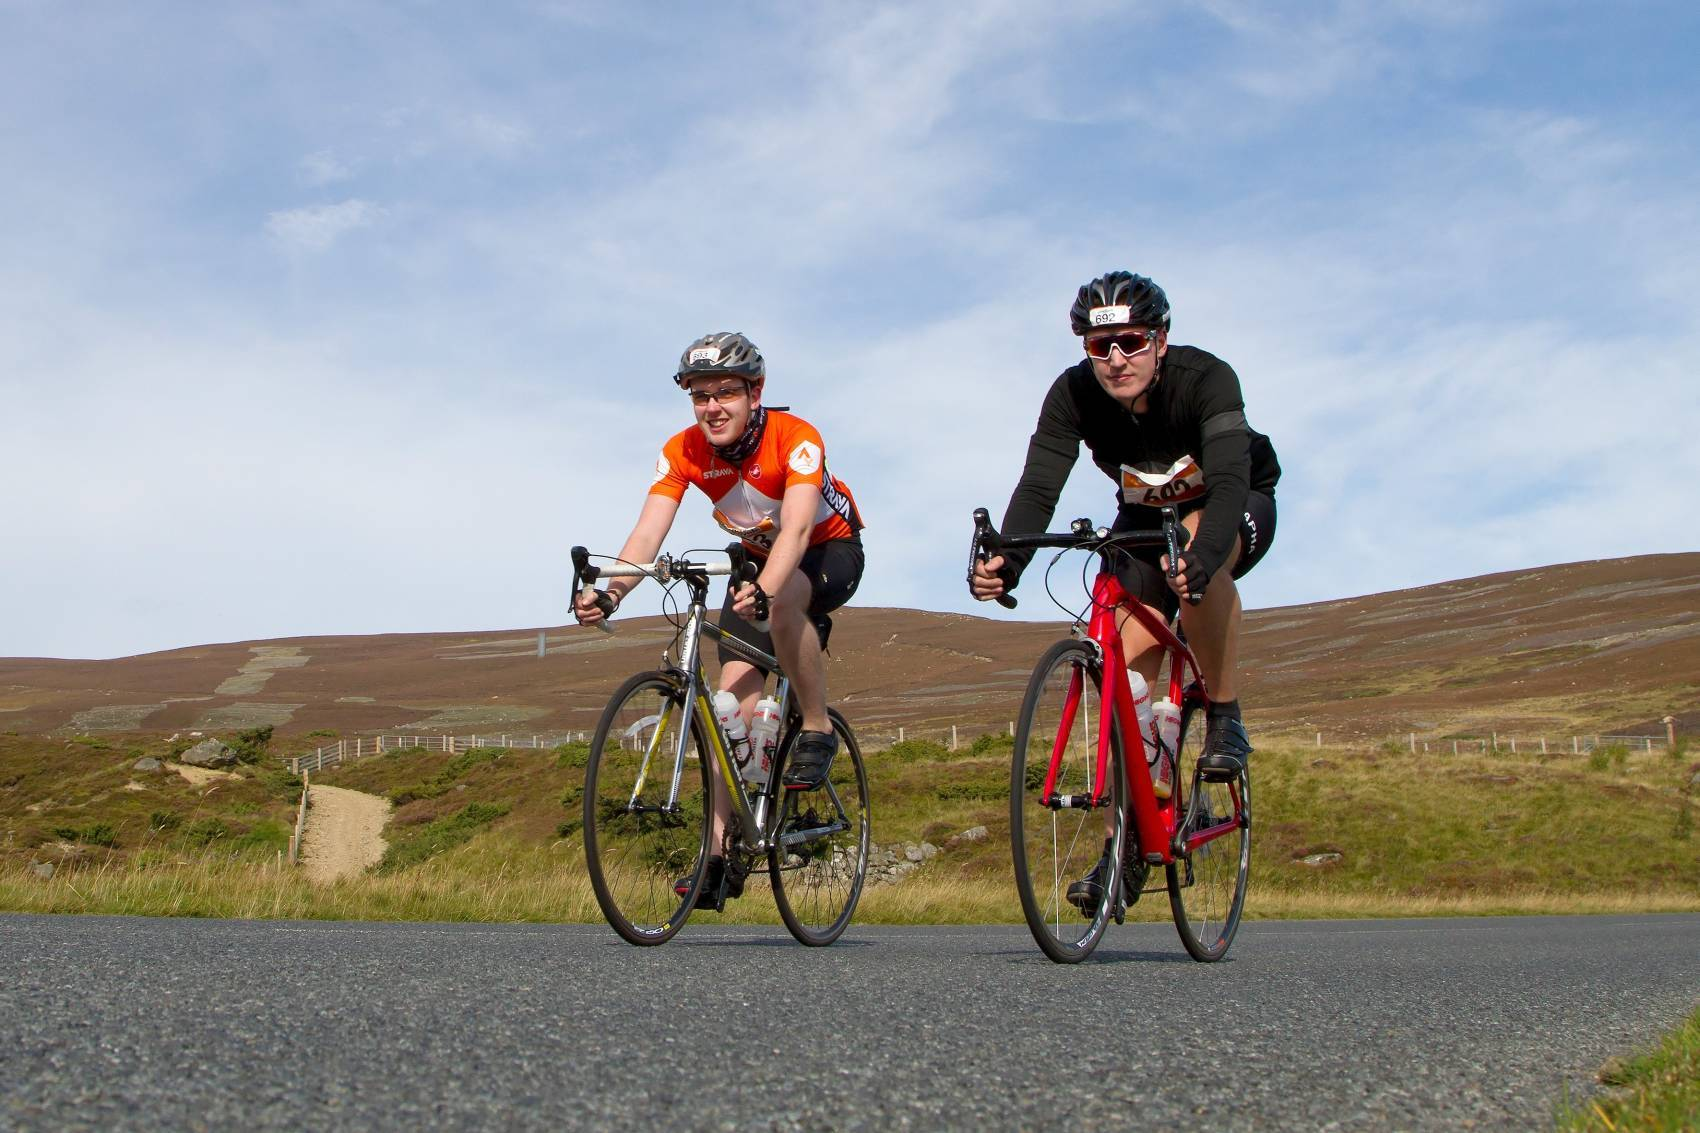 Craig and Lewis Moir are aiming to cycle 10,000 miles each over the course of 12 months.